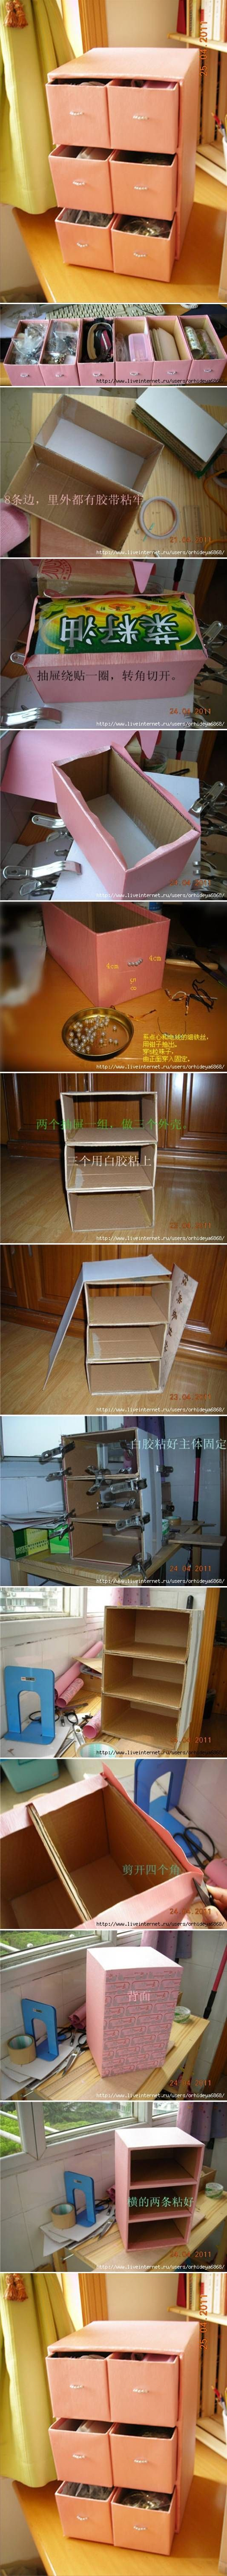 "<input+type=""hidden""+value=""""+data-frizzlyPostContainer=""""+data-frizzlyPostUrl=""http://www.usefuldiy.com/diy-small-cardboard-chest/""+data-frizzlyPostTitle=""DIY+Small+Cardboard+Chest""+data-frizzlyHoverContainer=""""><p>>>>+Craft+Tutorials+More+Free+Instructions+Free+Tutorials+More+Craft+Tutorials</p>:"